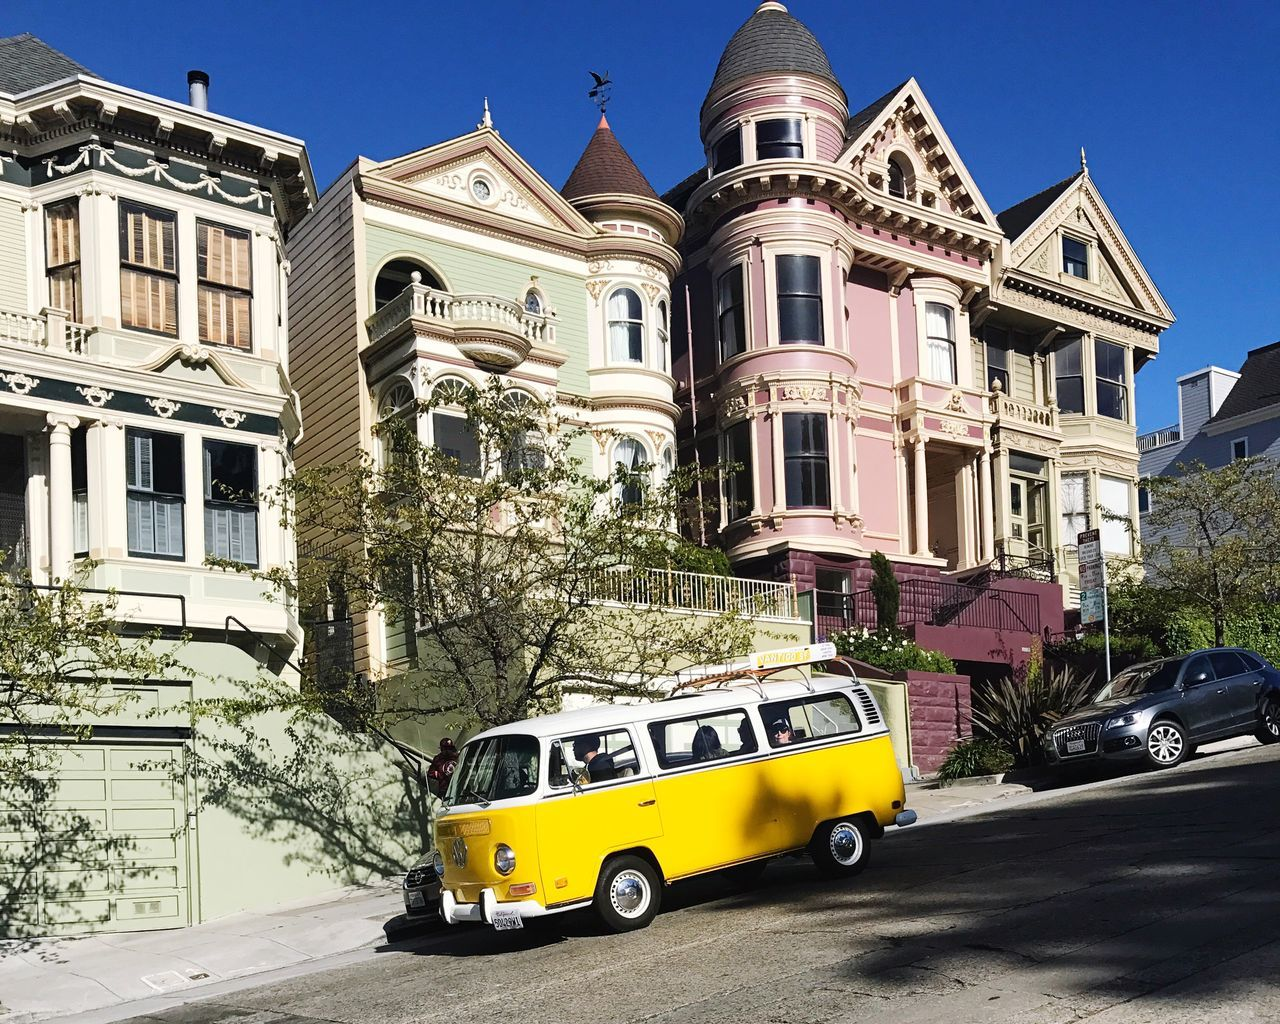 Car Building Exterior Architecture Transportation Mode Of Transport Land Vehicle Built Structure Outdoors Day Street Clear Sky No People Sunlight City Yellow Taxi Tree Sky Victorian Victorian Architecture VW Bus Volkswagen Little Miss Sunshine Hippie Hippielife Sixties